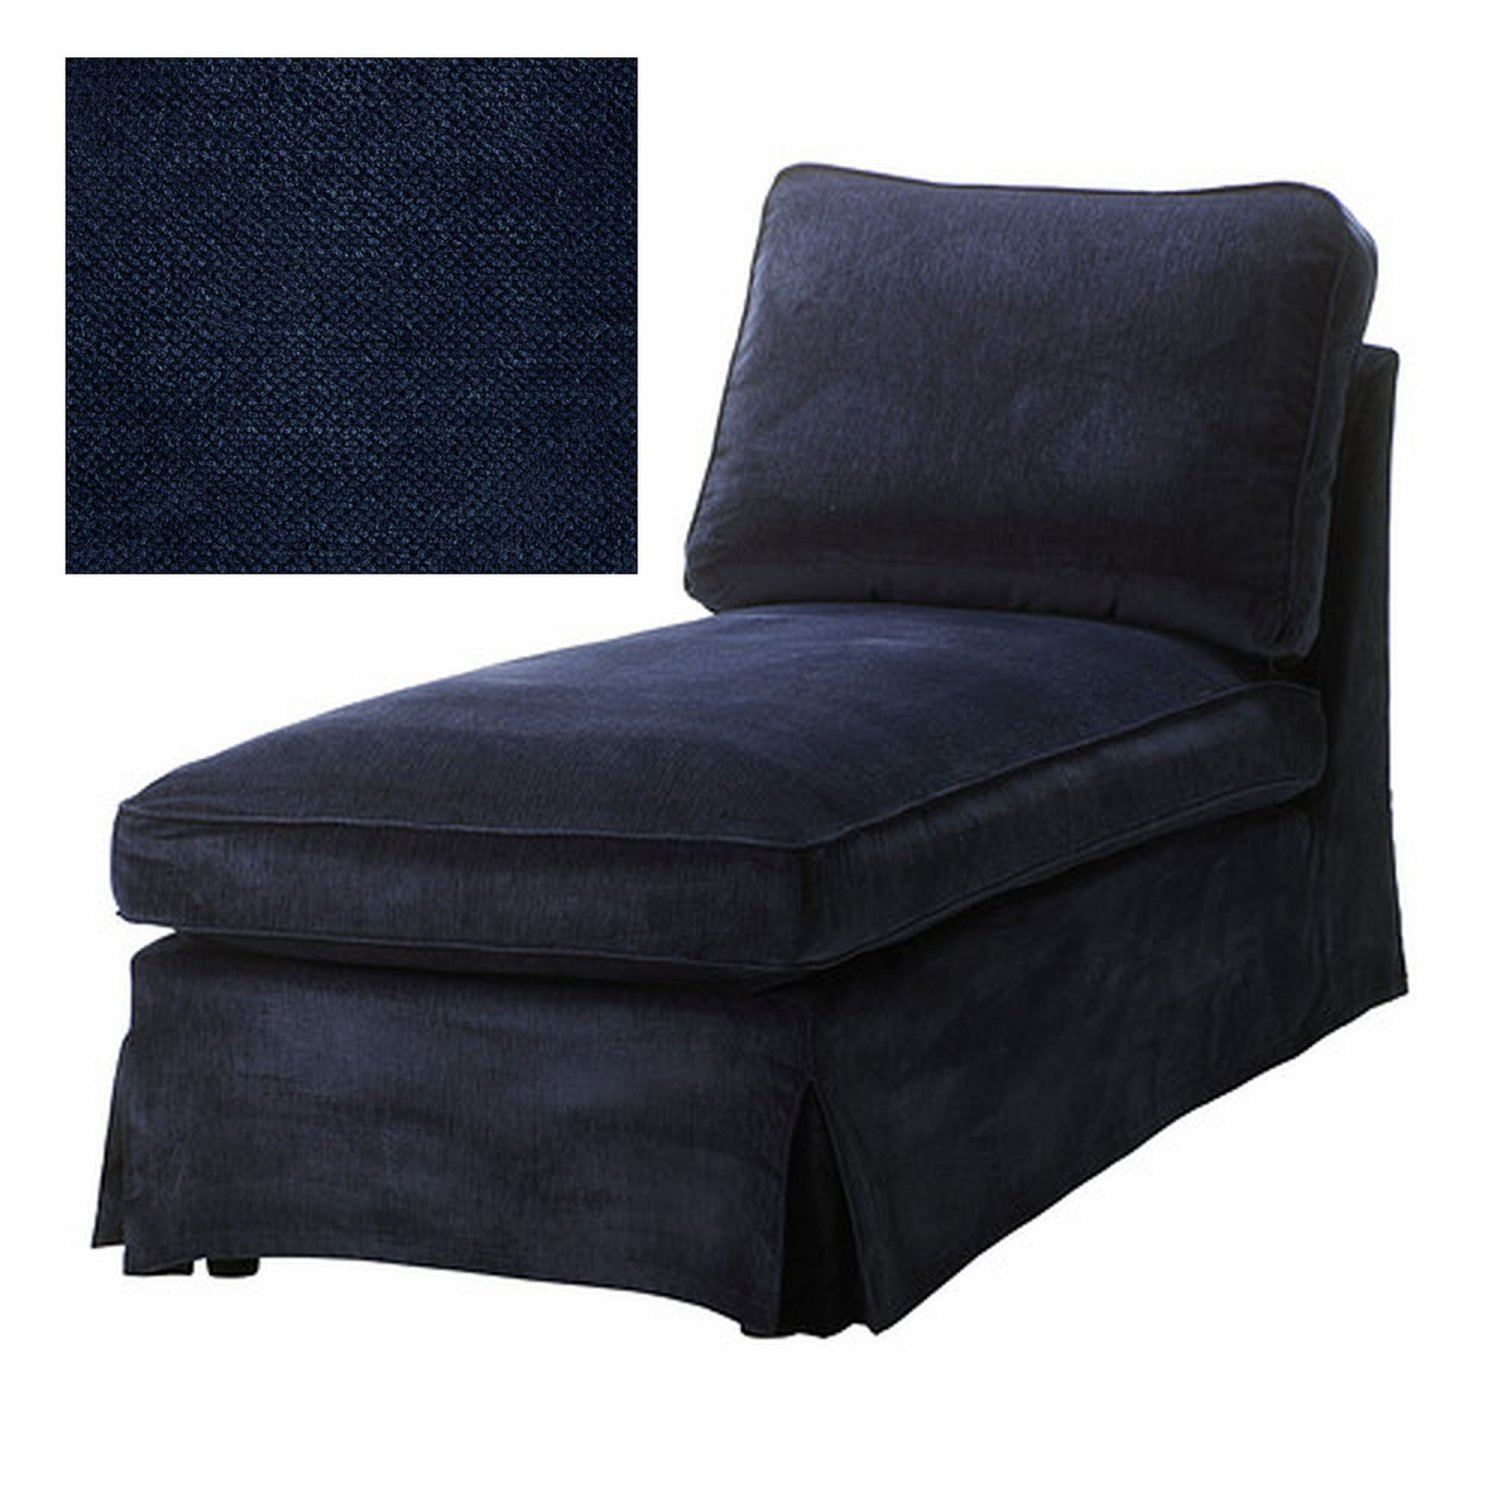 Ikea Ektorp Chaise Longue Cover Slipcover Vellinge Dark